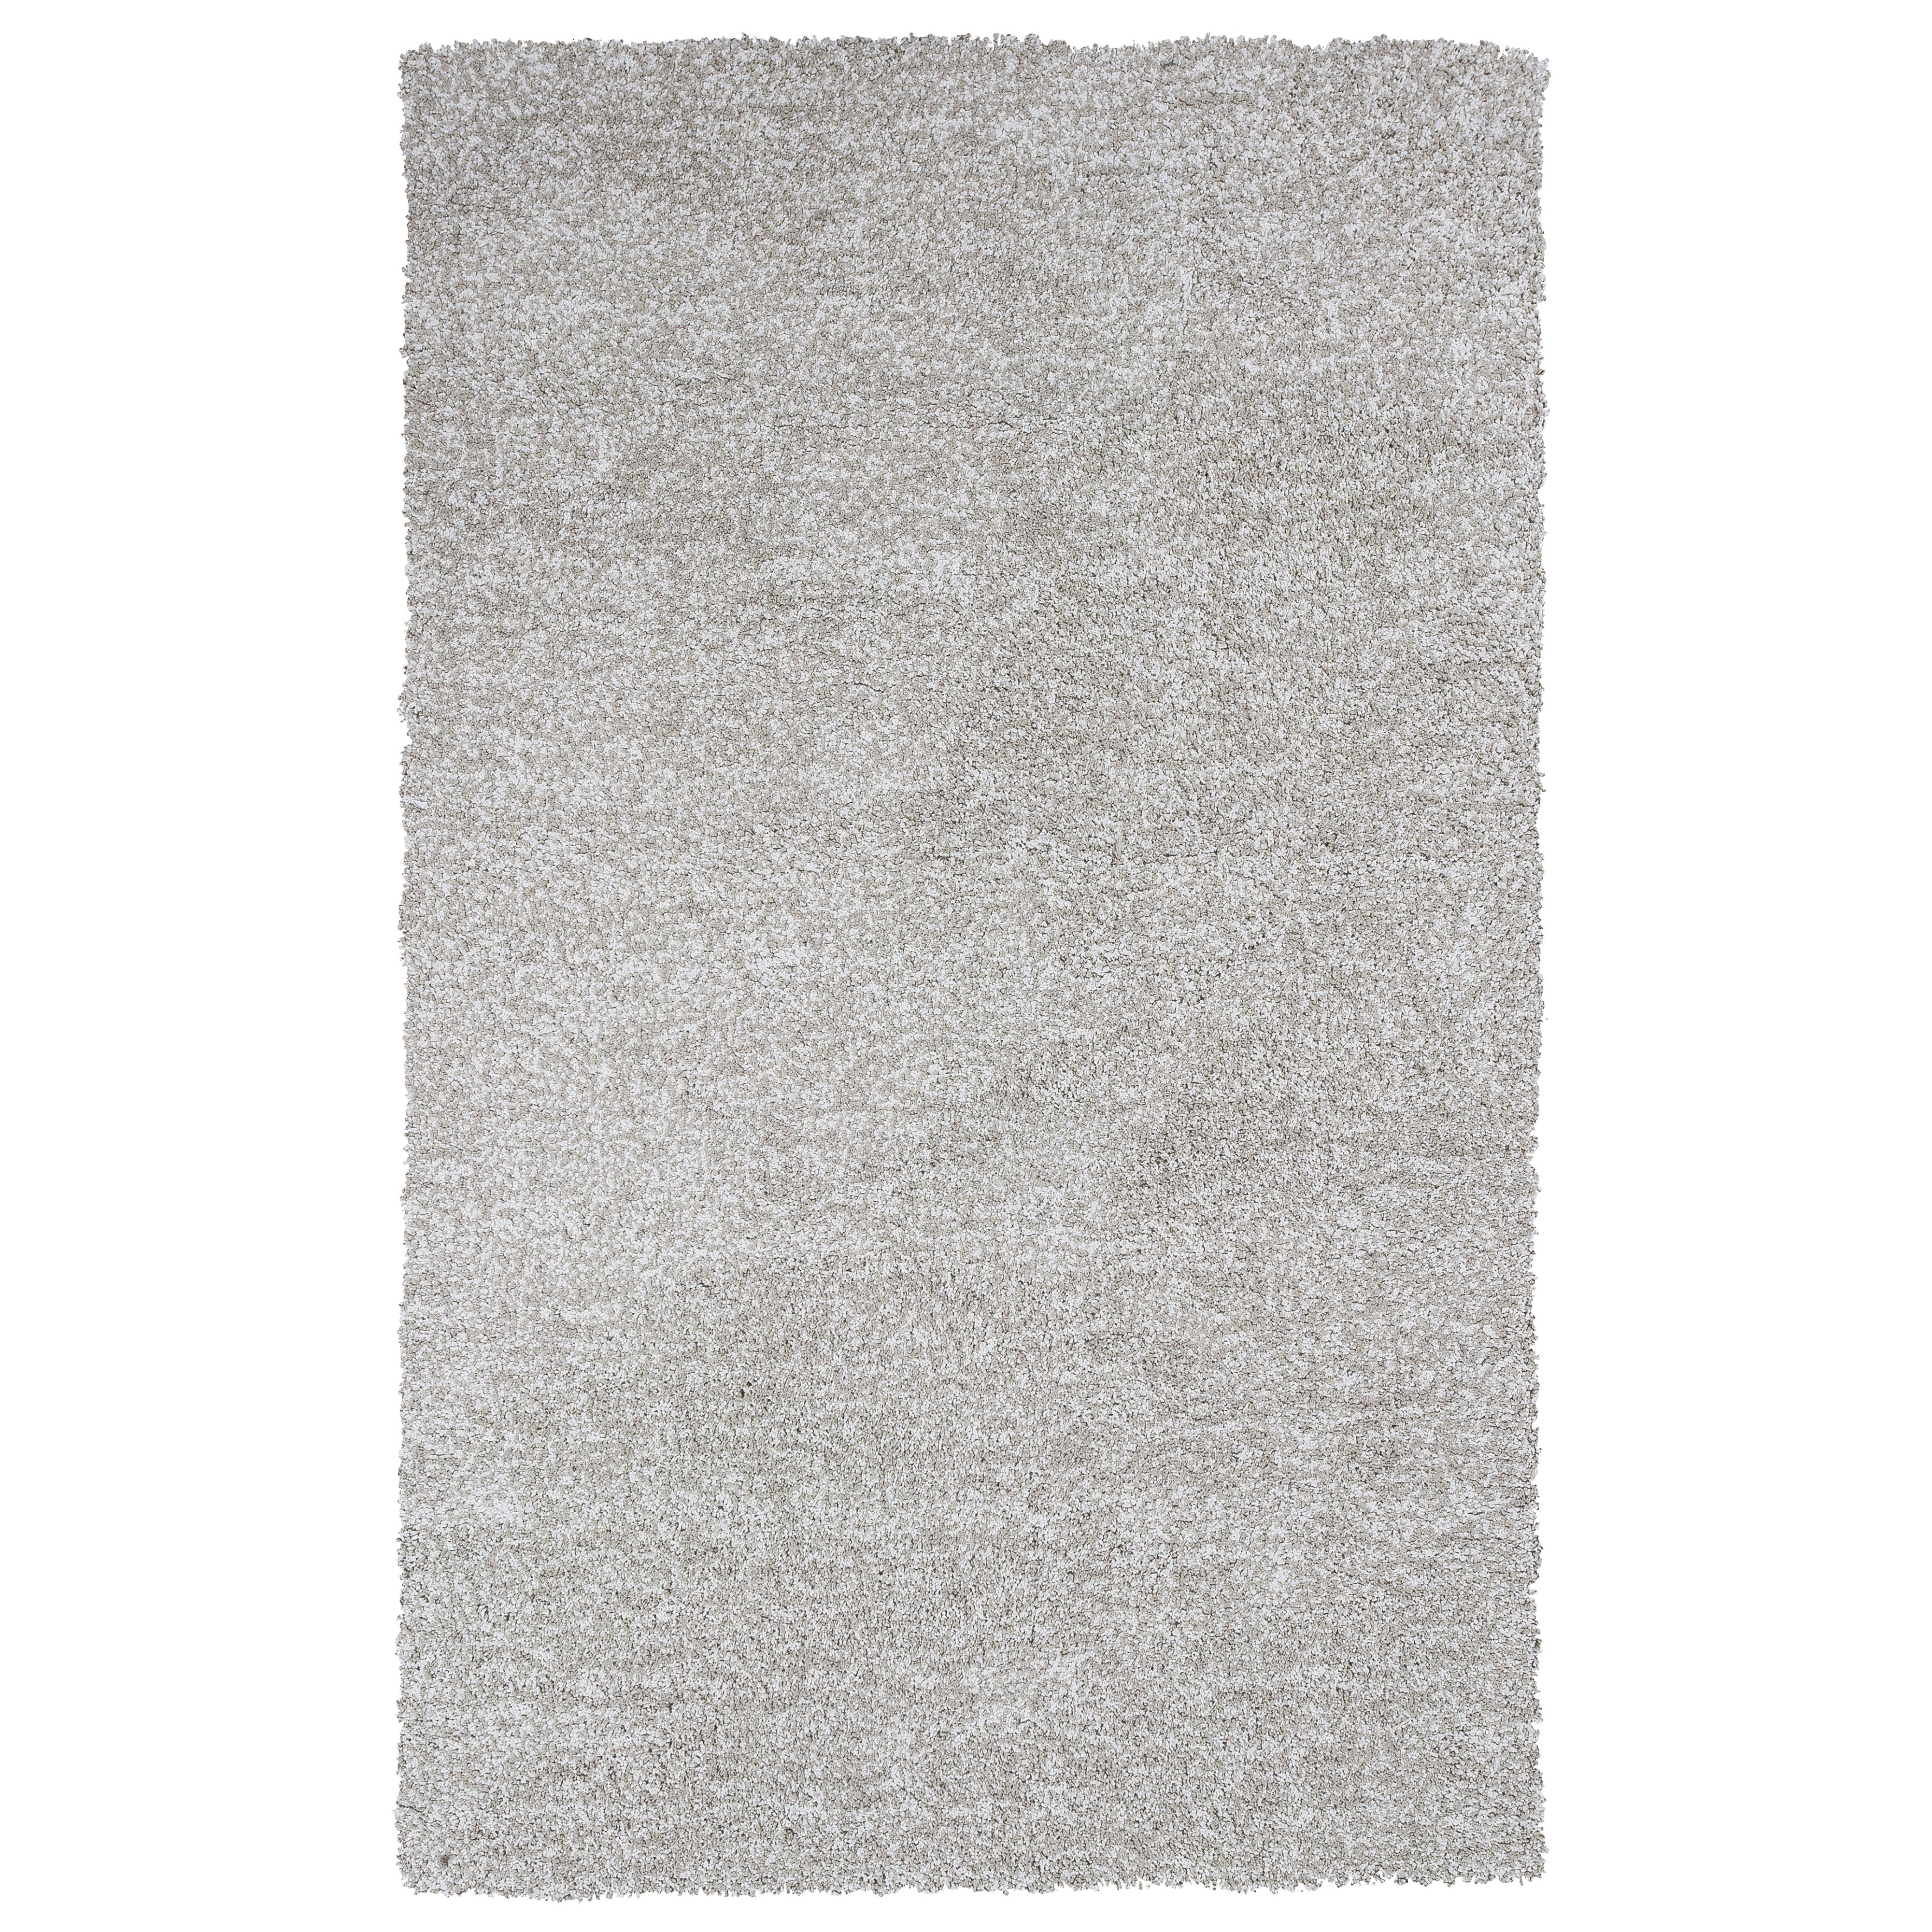 Bliss 8' x 11' Rug by Kas at Darvin Furniture